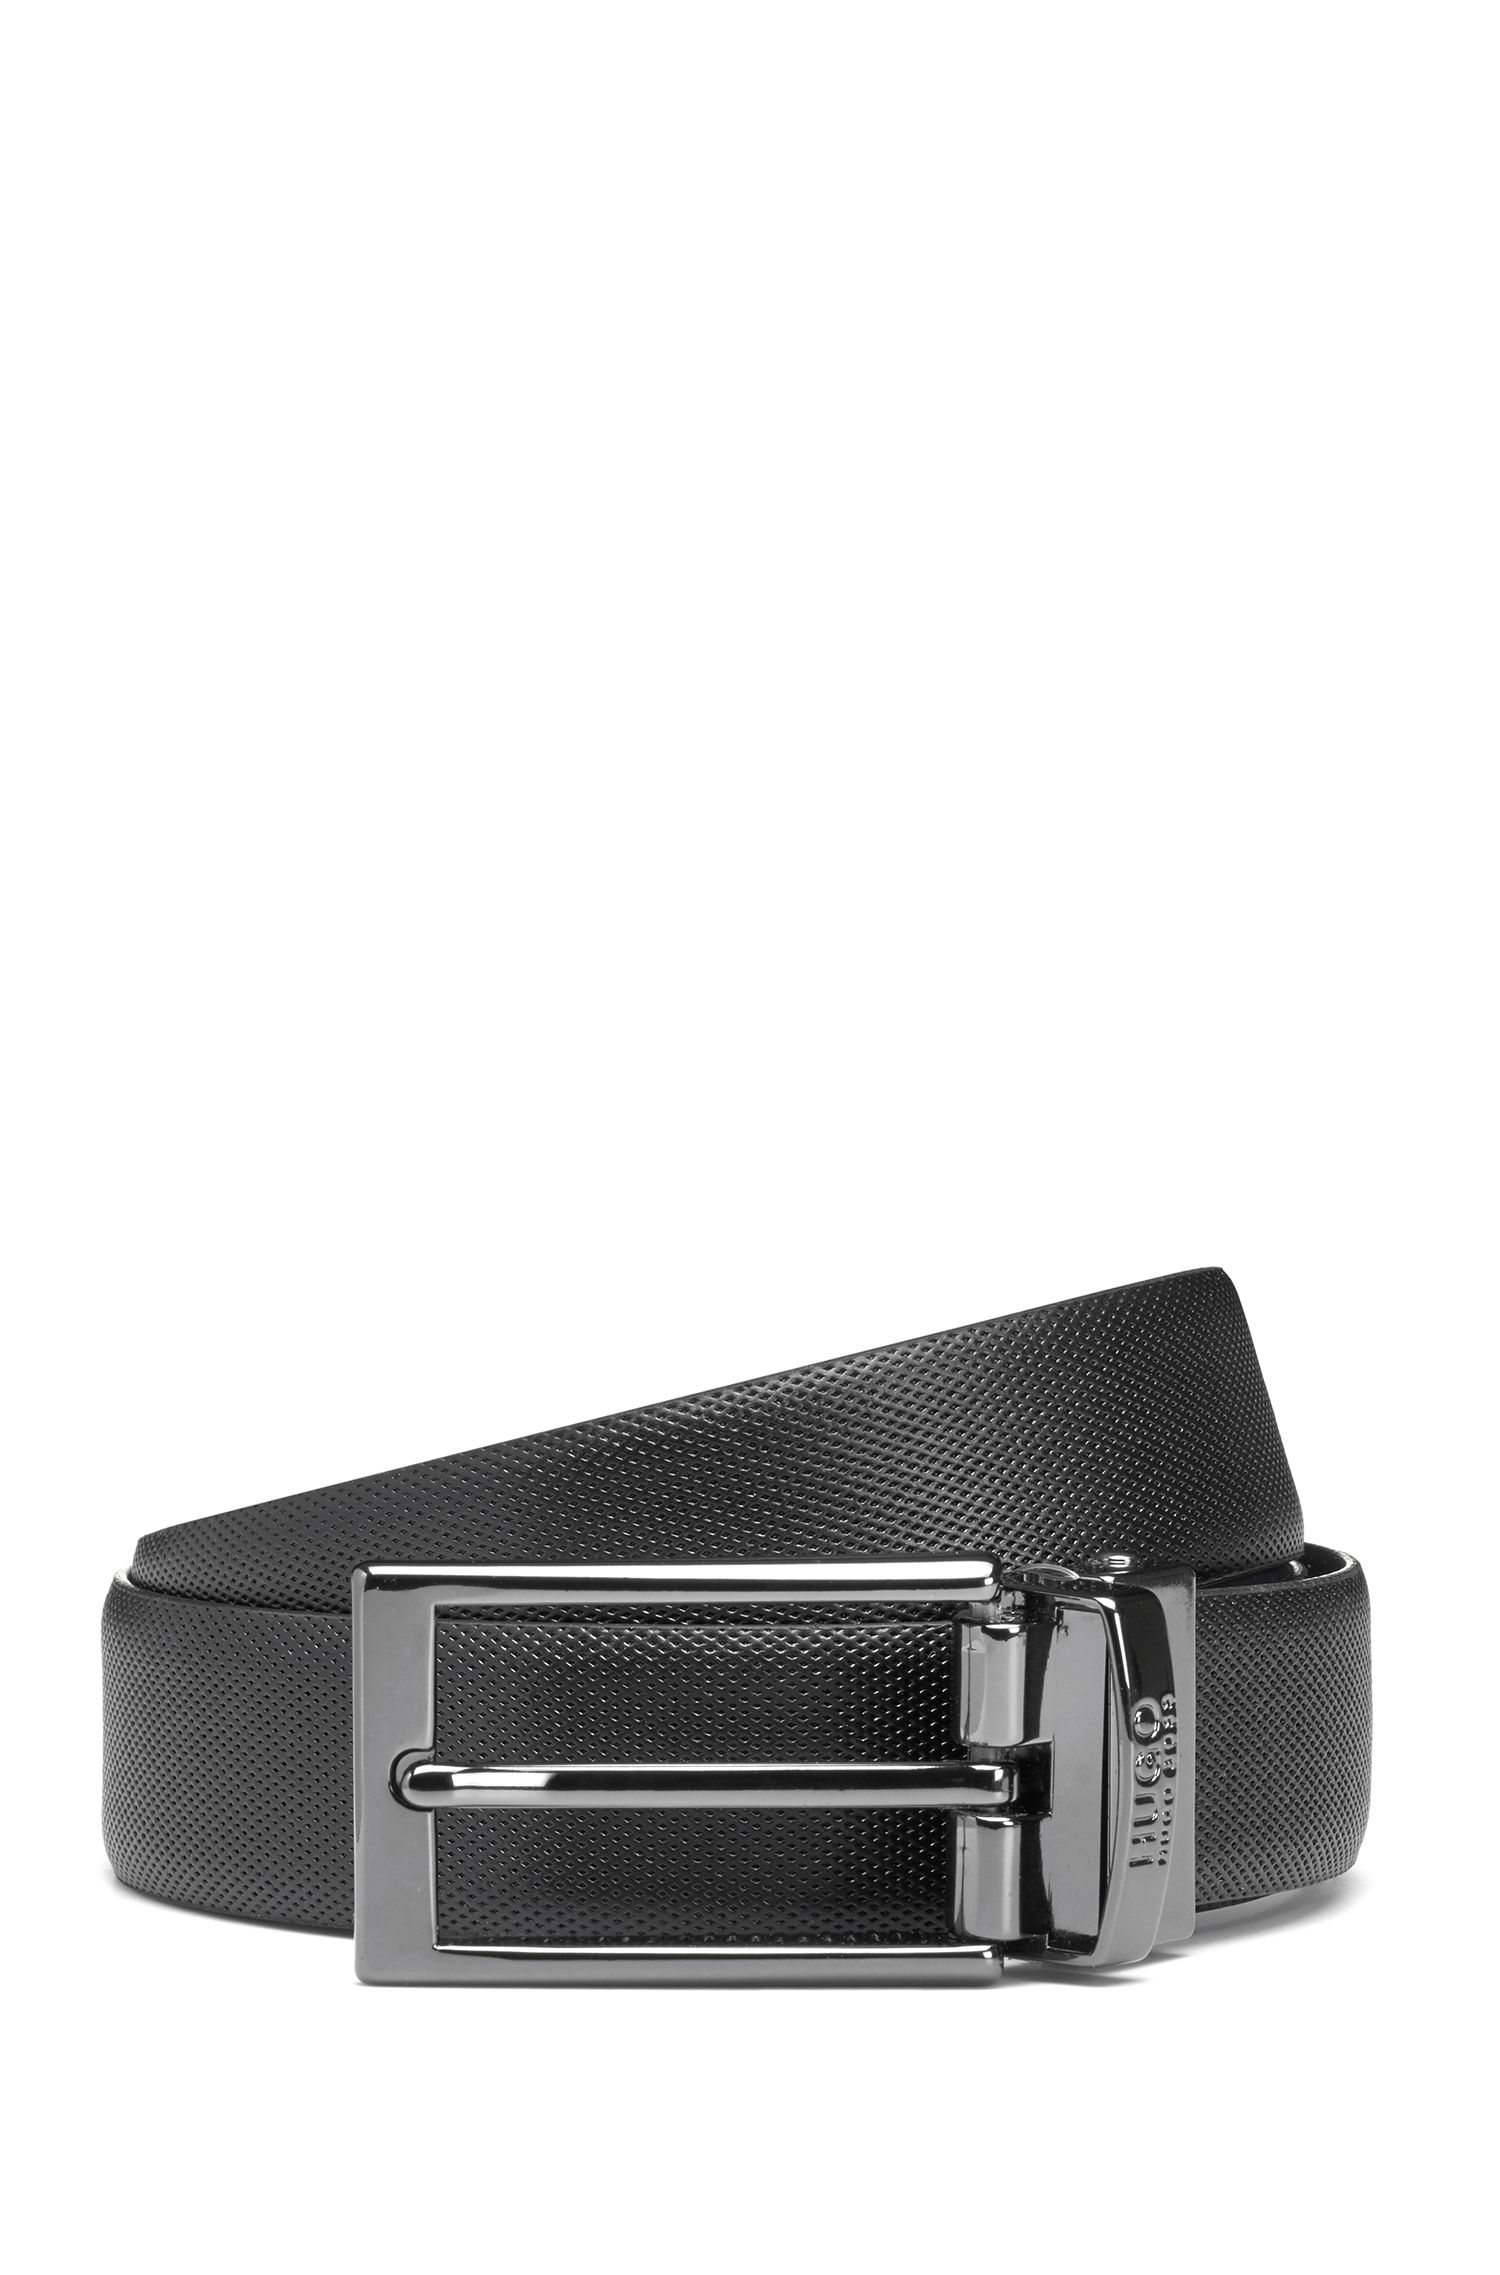 Reversible leather belt with a slimline buckle